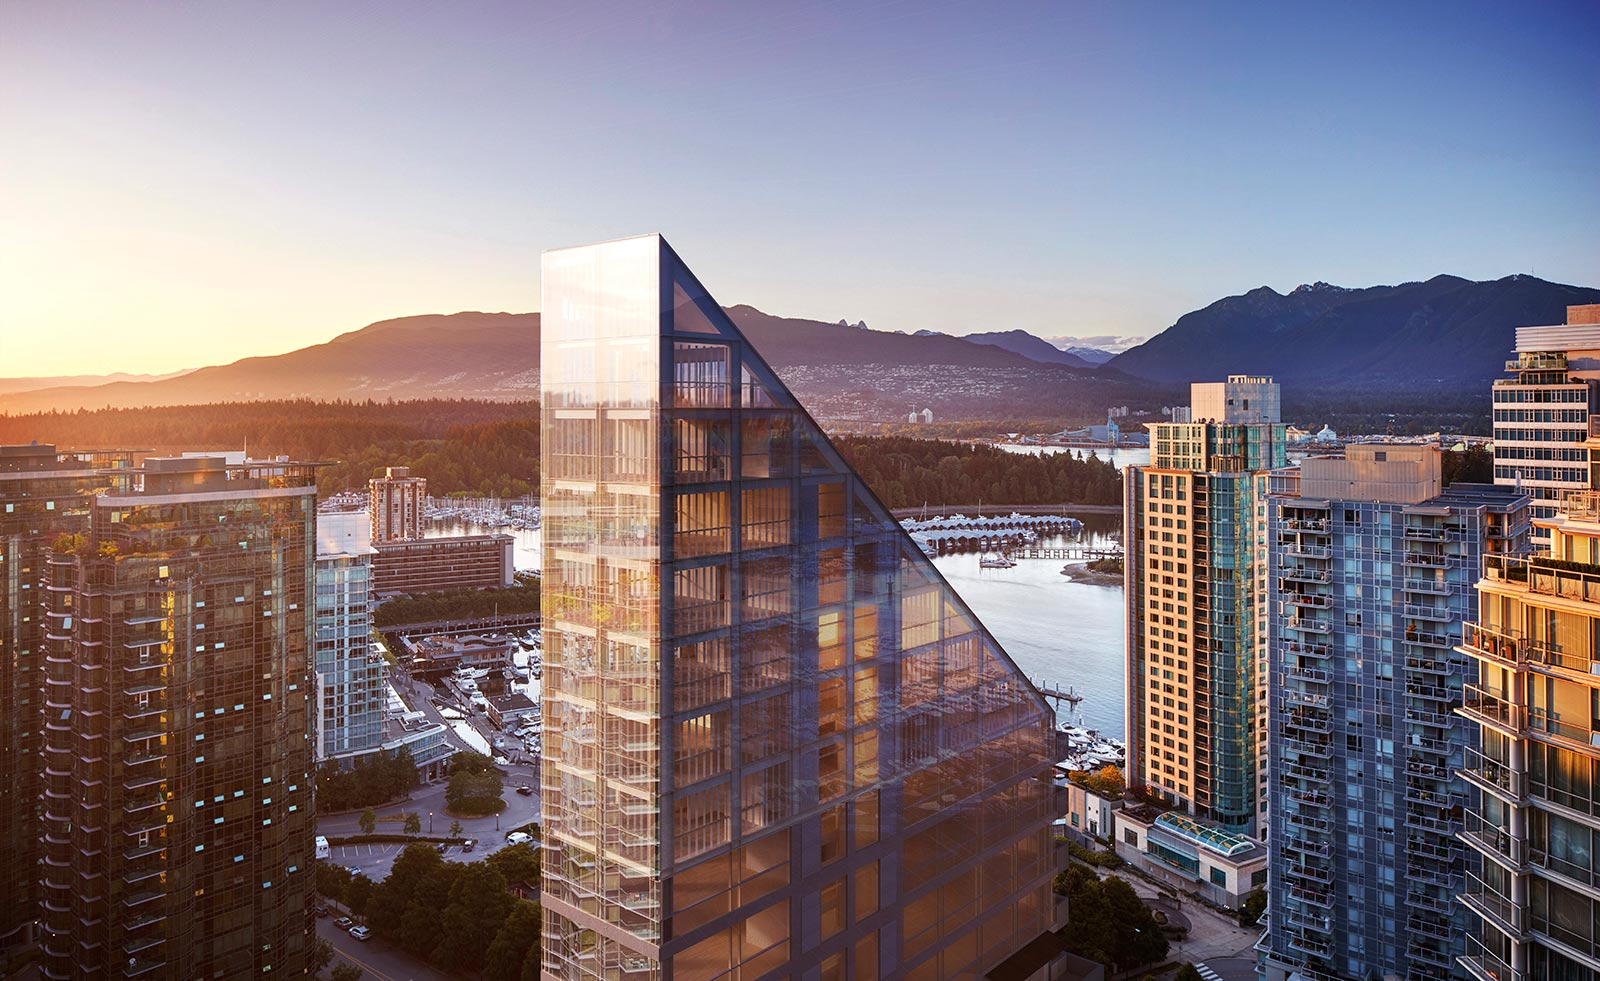 Birds eye view of Terrace House luxury condos in Vancouver, B.C.. City skyline and landscape during sunset.